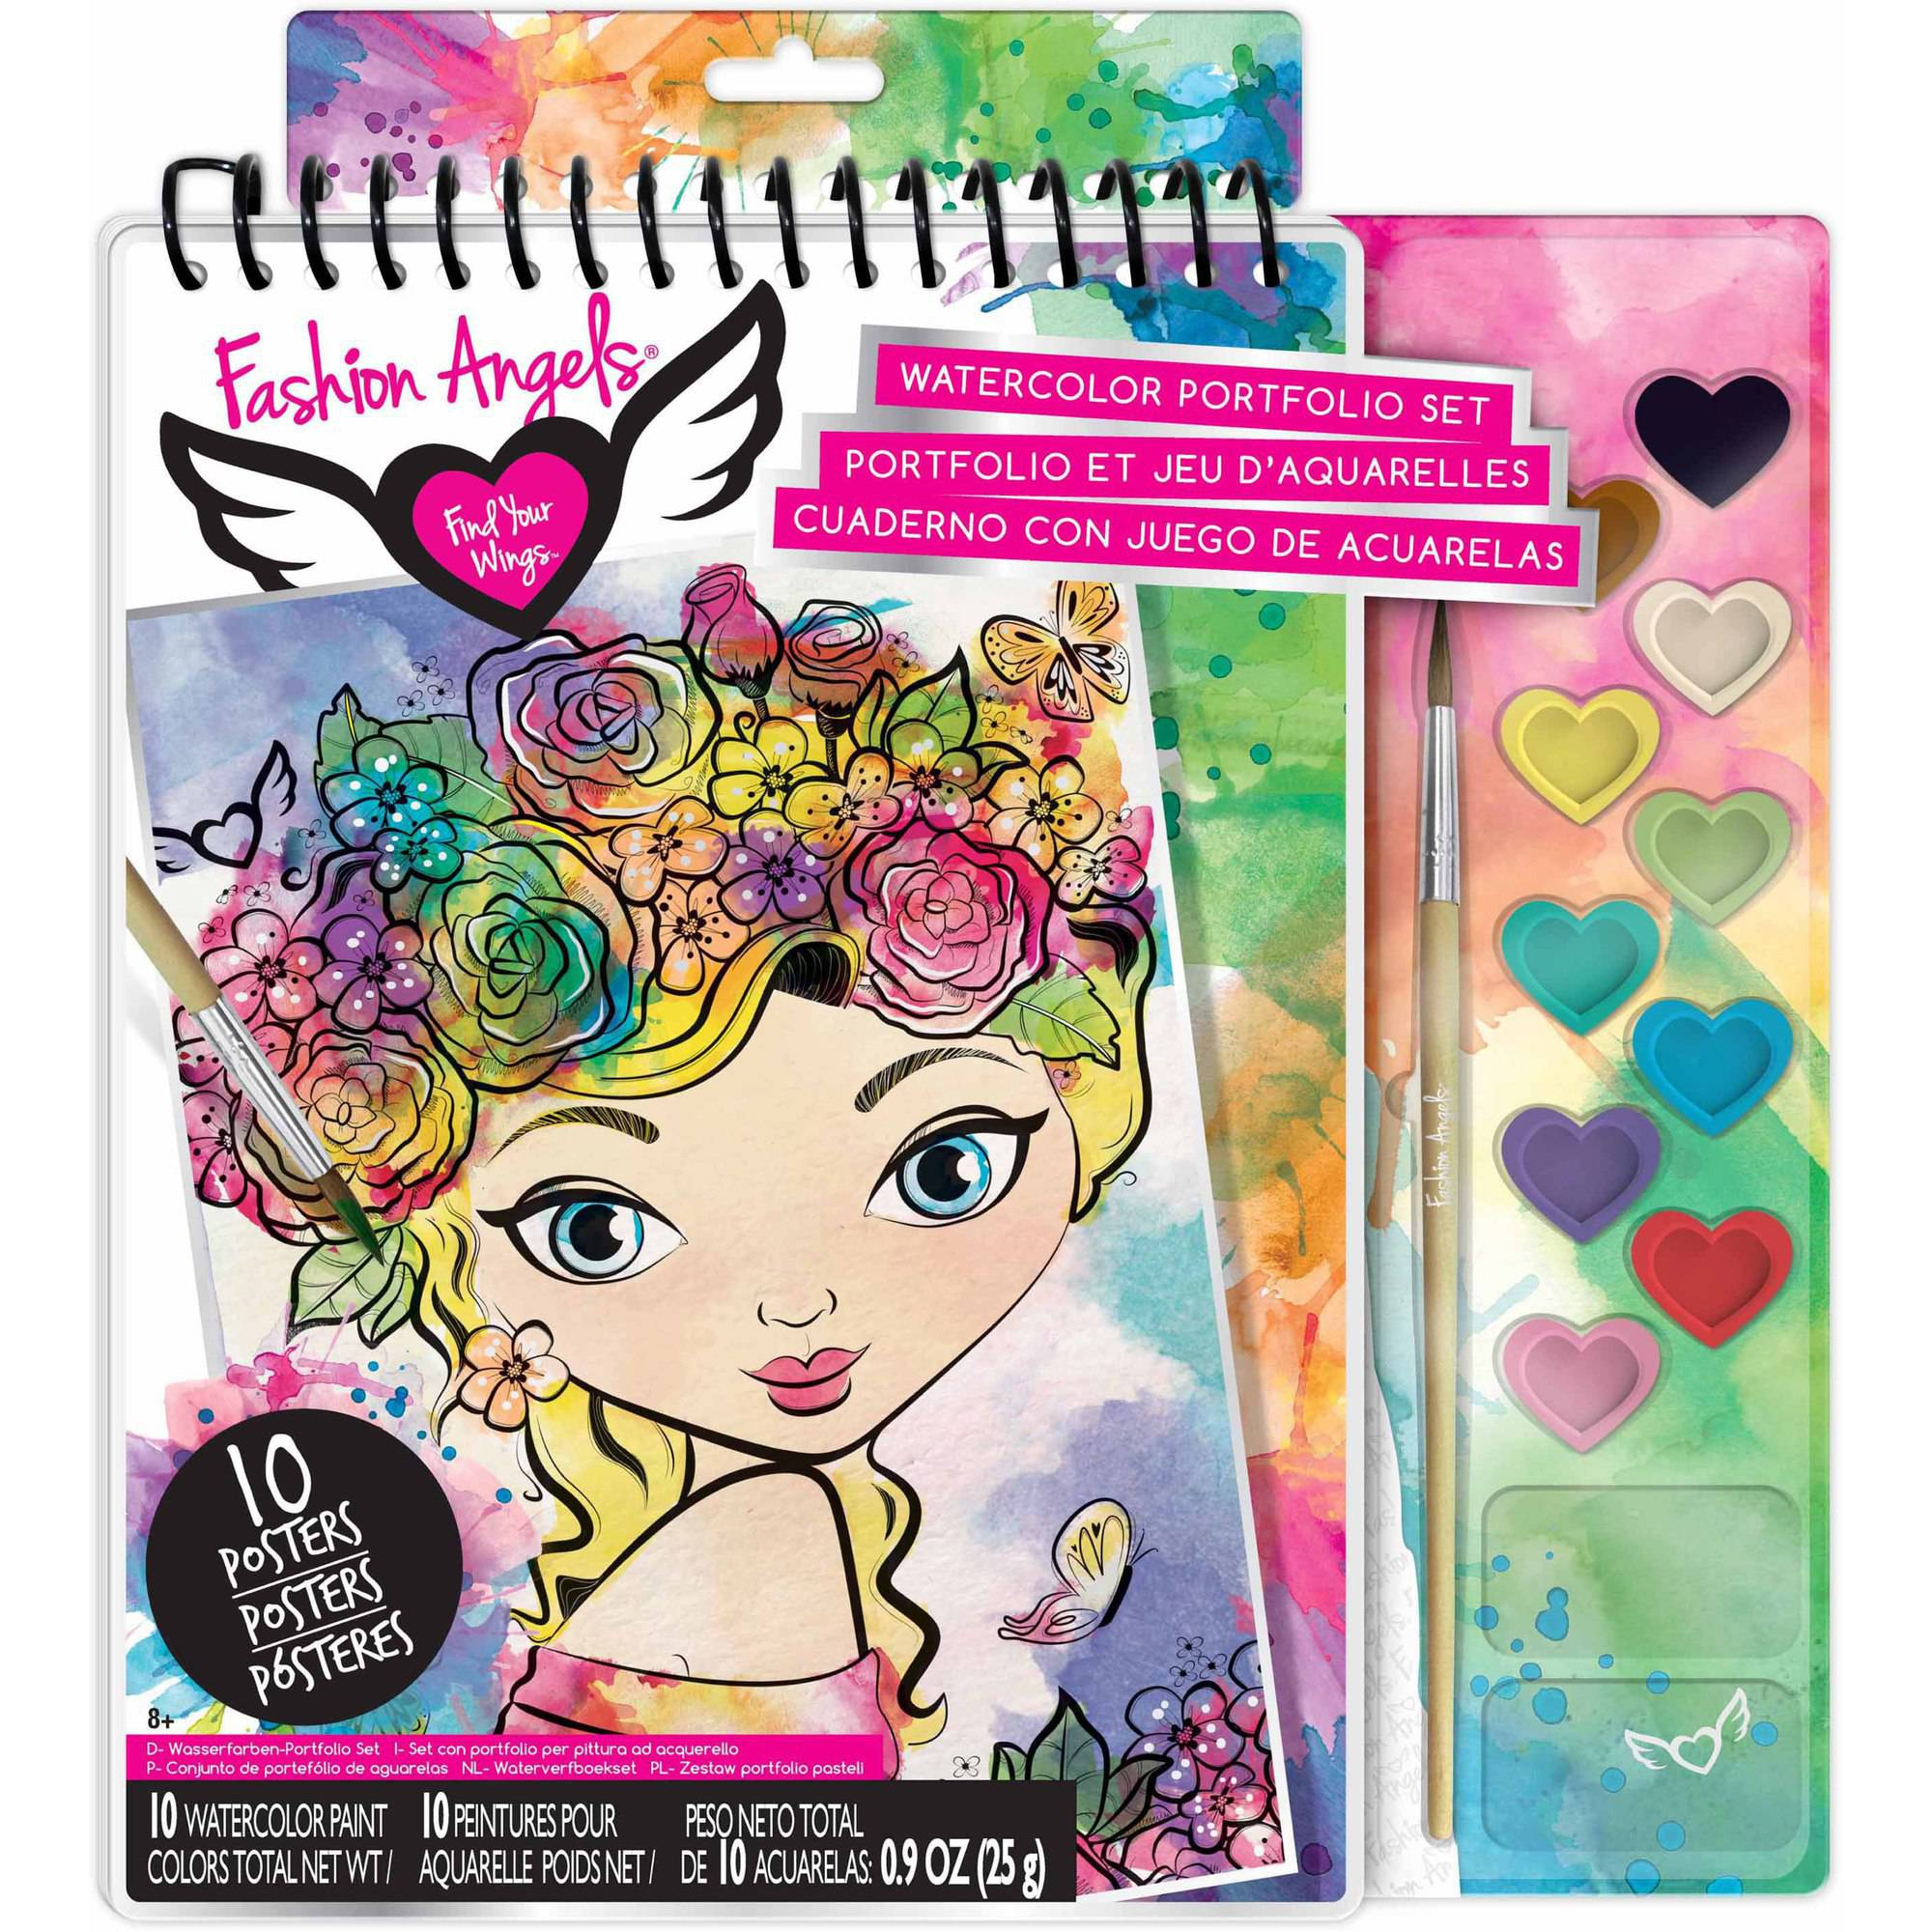 Fashion Angels Watercolor Illustration Set